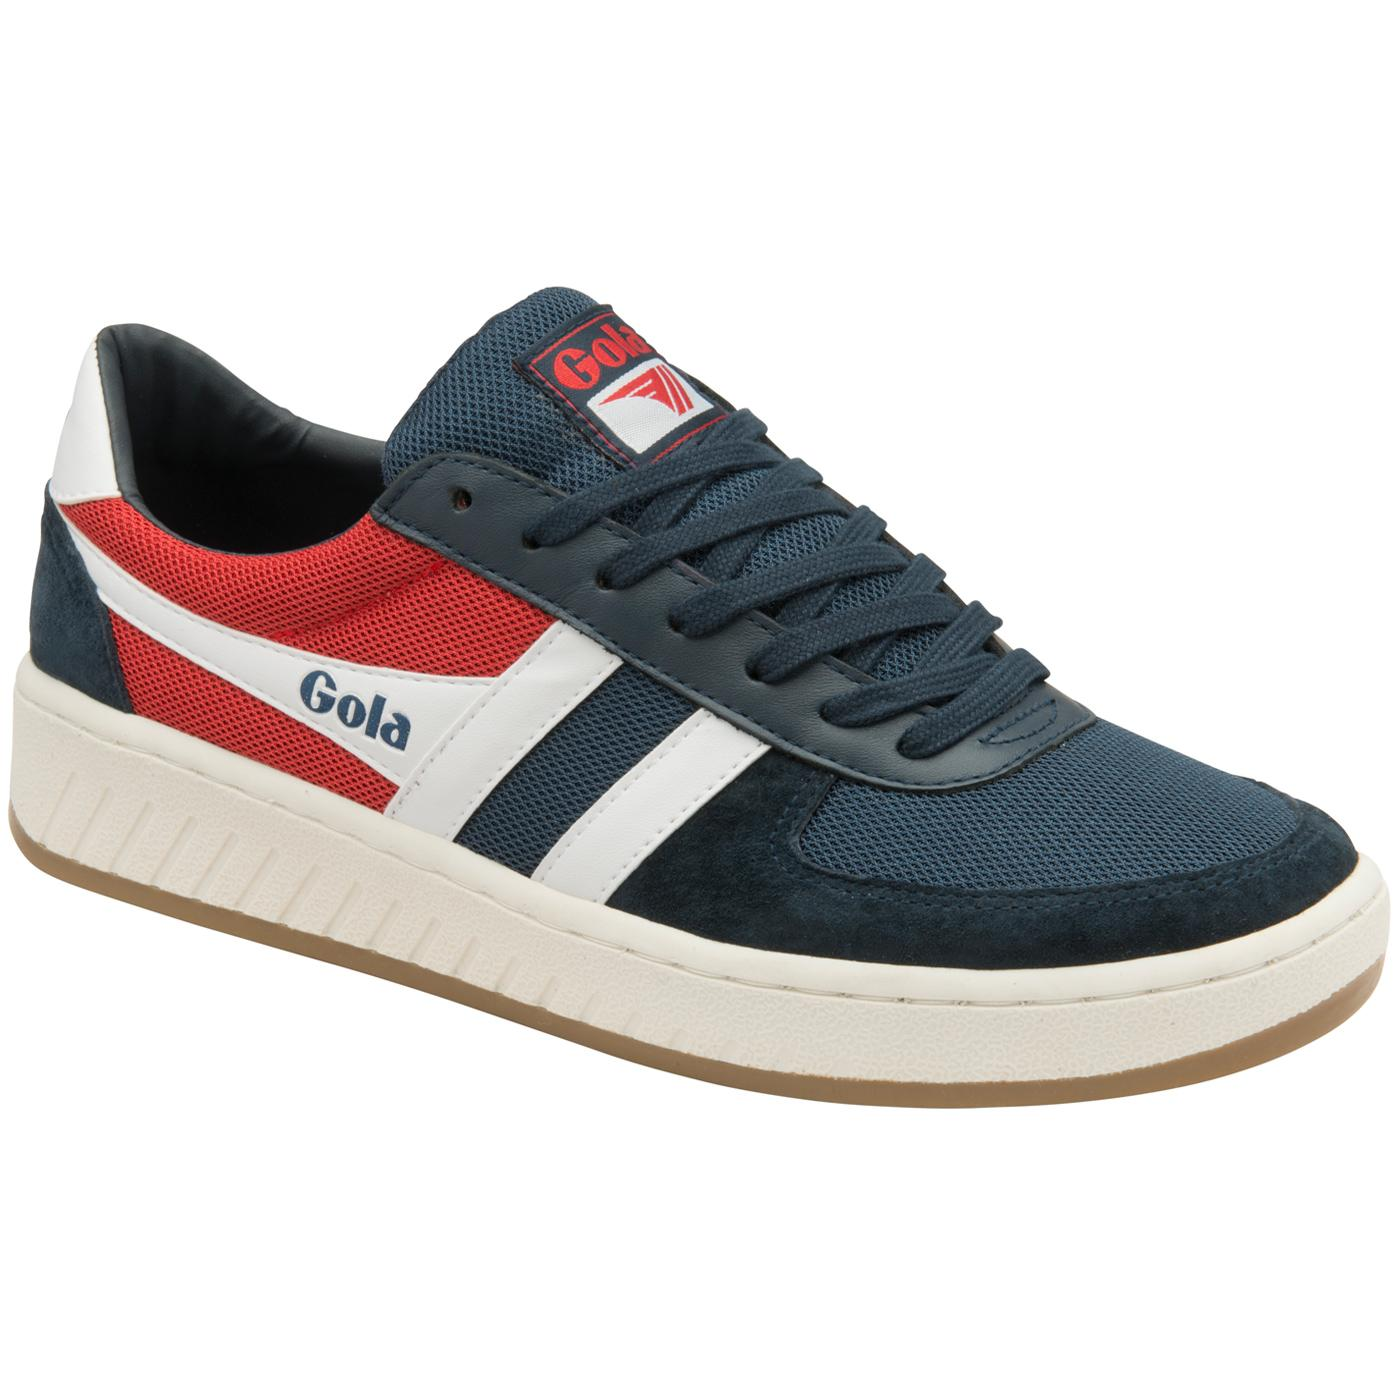 Grandslam RWB GOLA Men's Retro Court Trainers NAVY